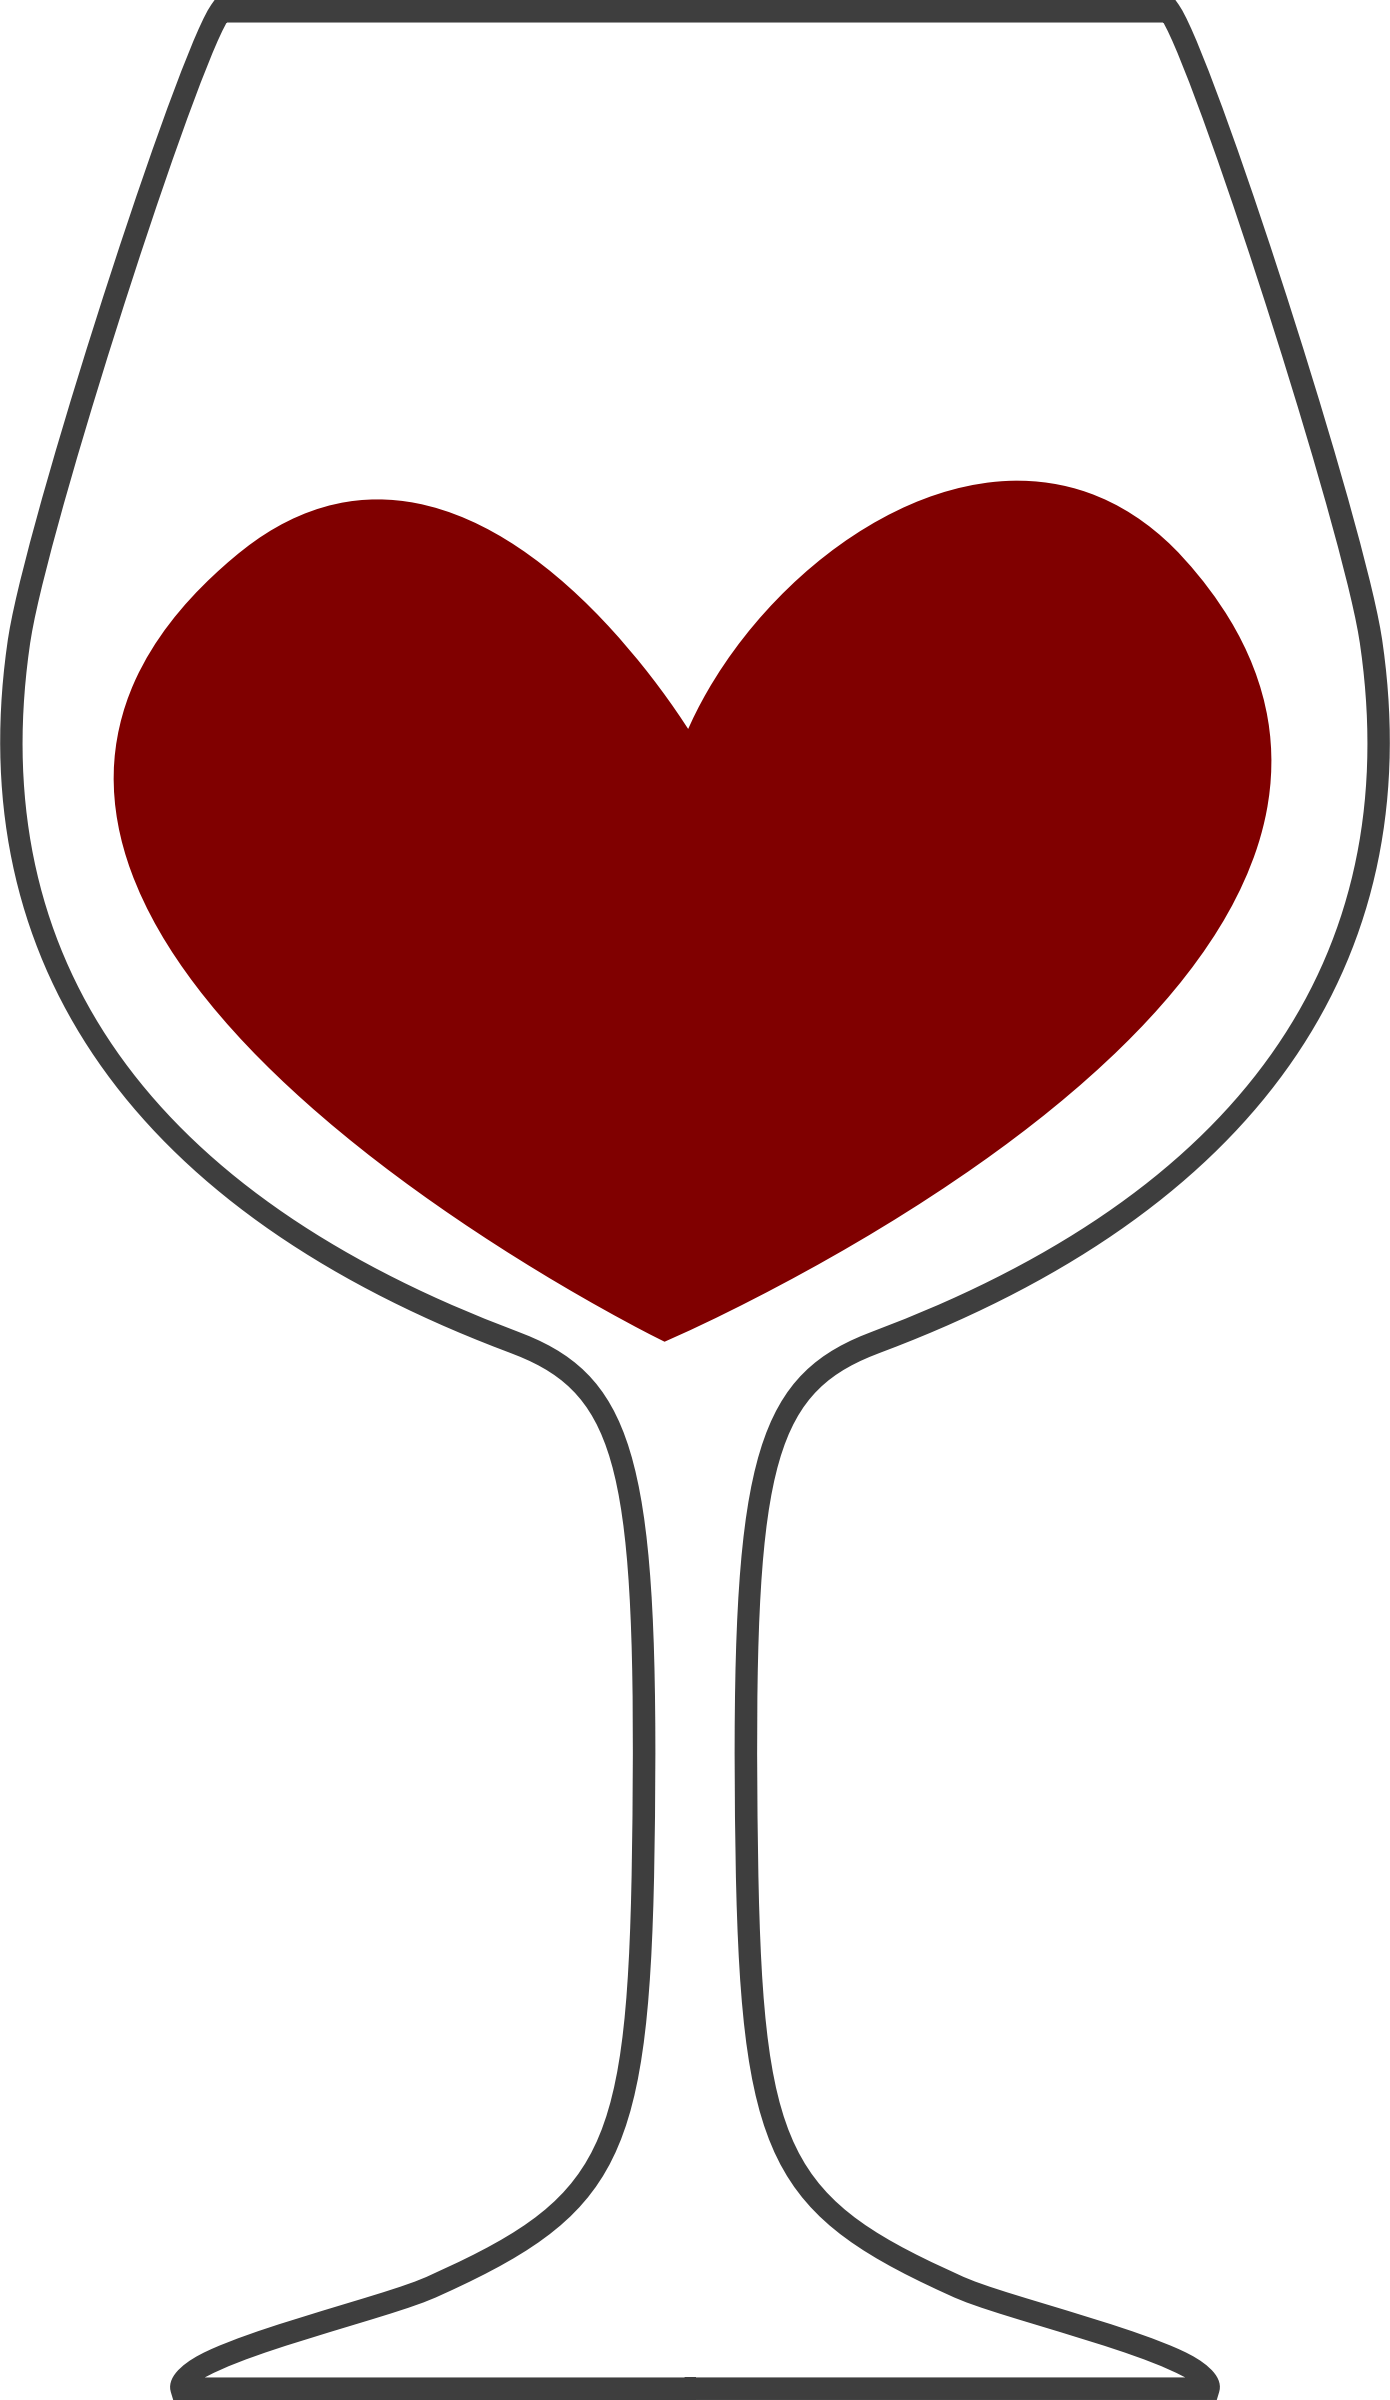 Love of red big. Clipart heart wine